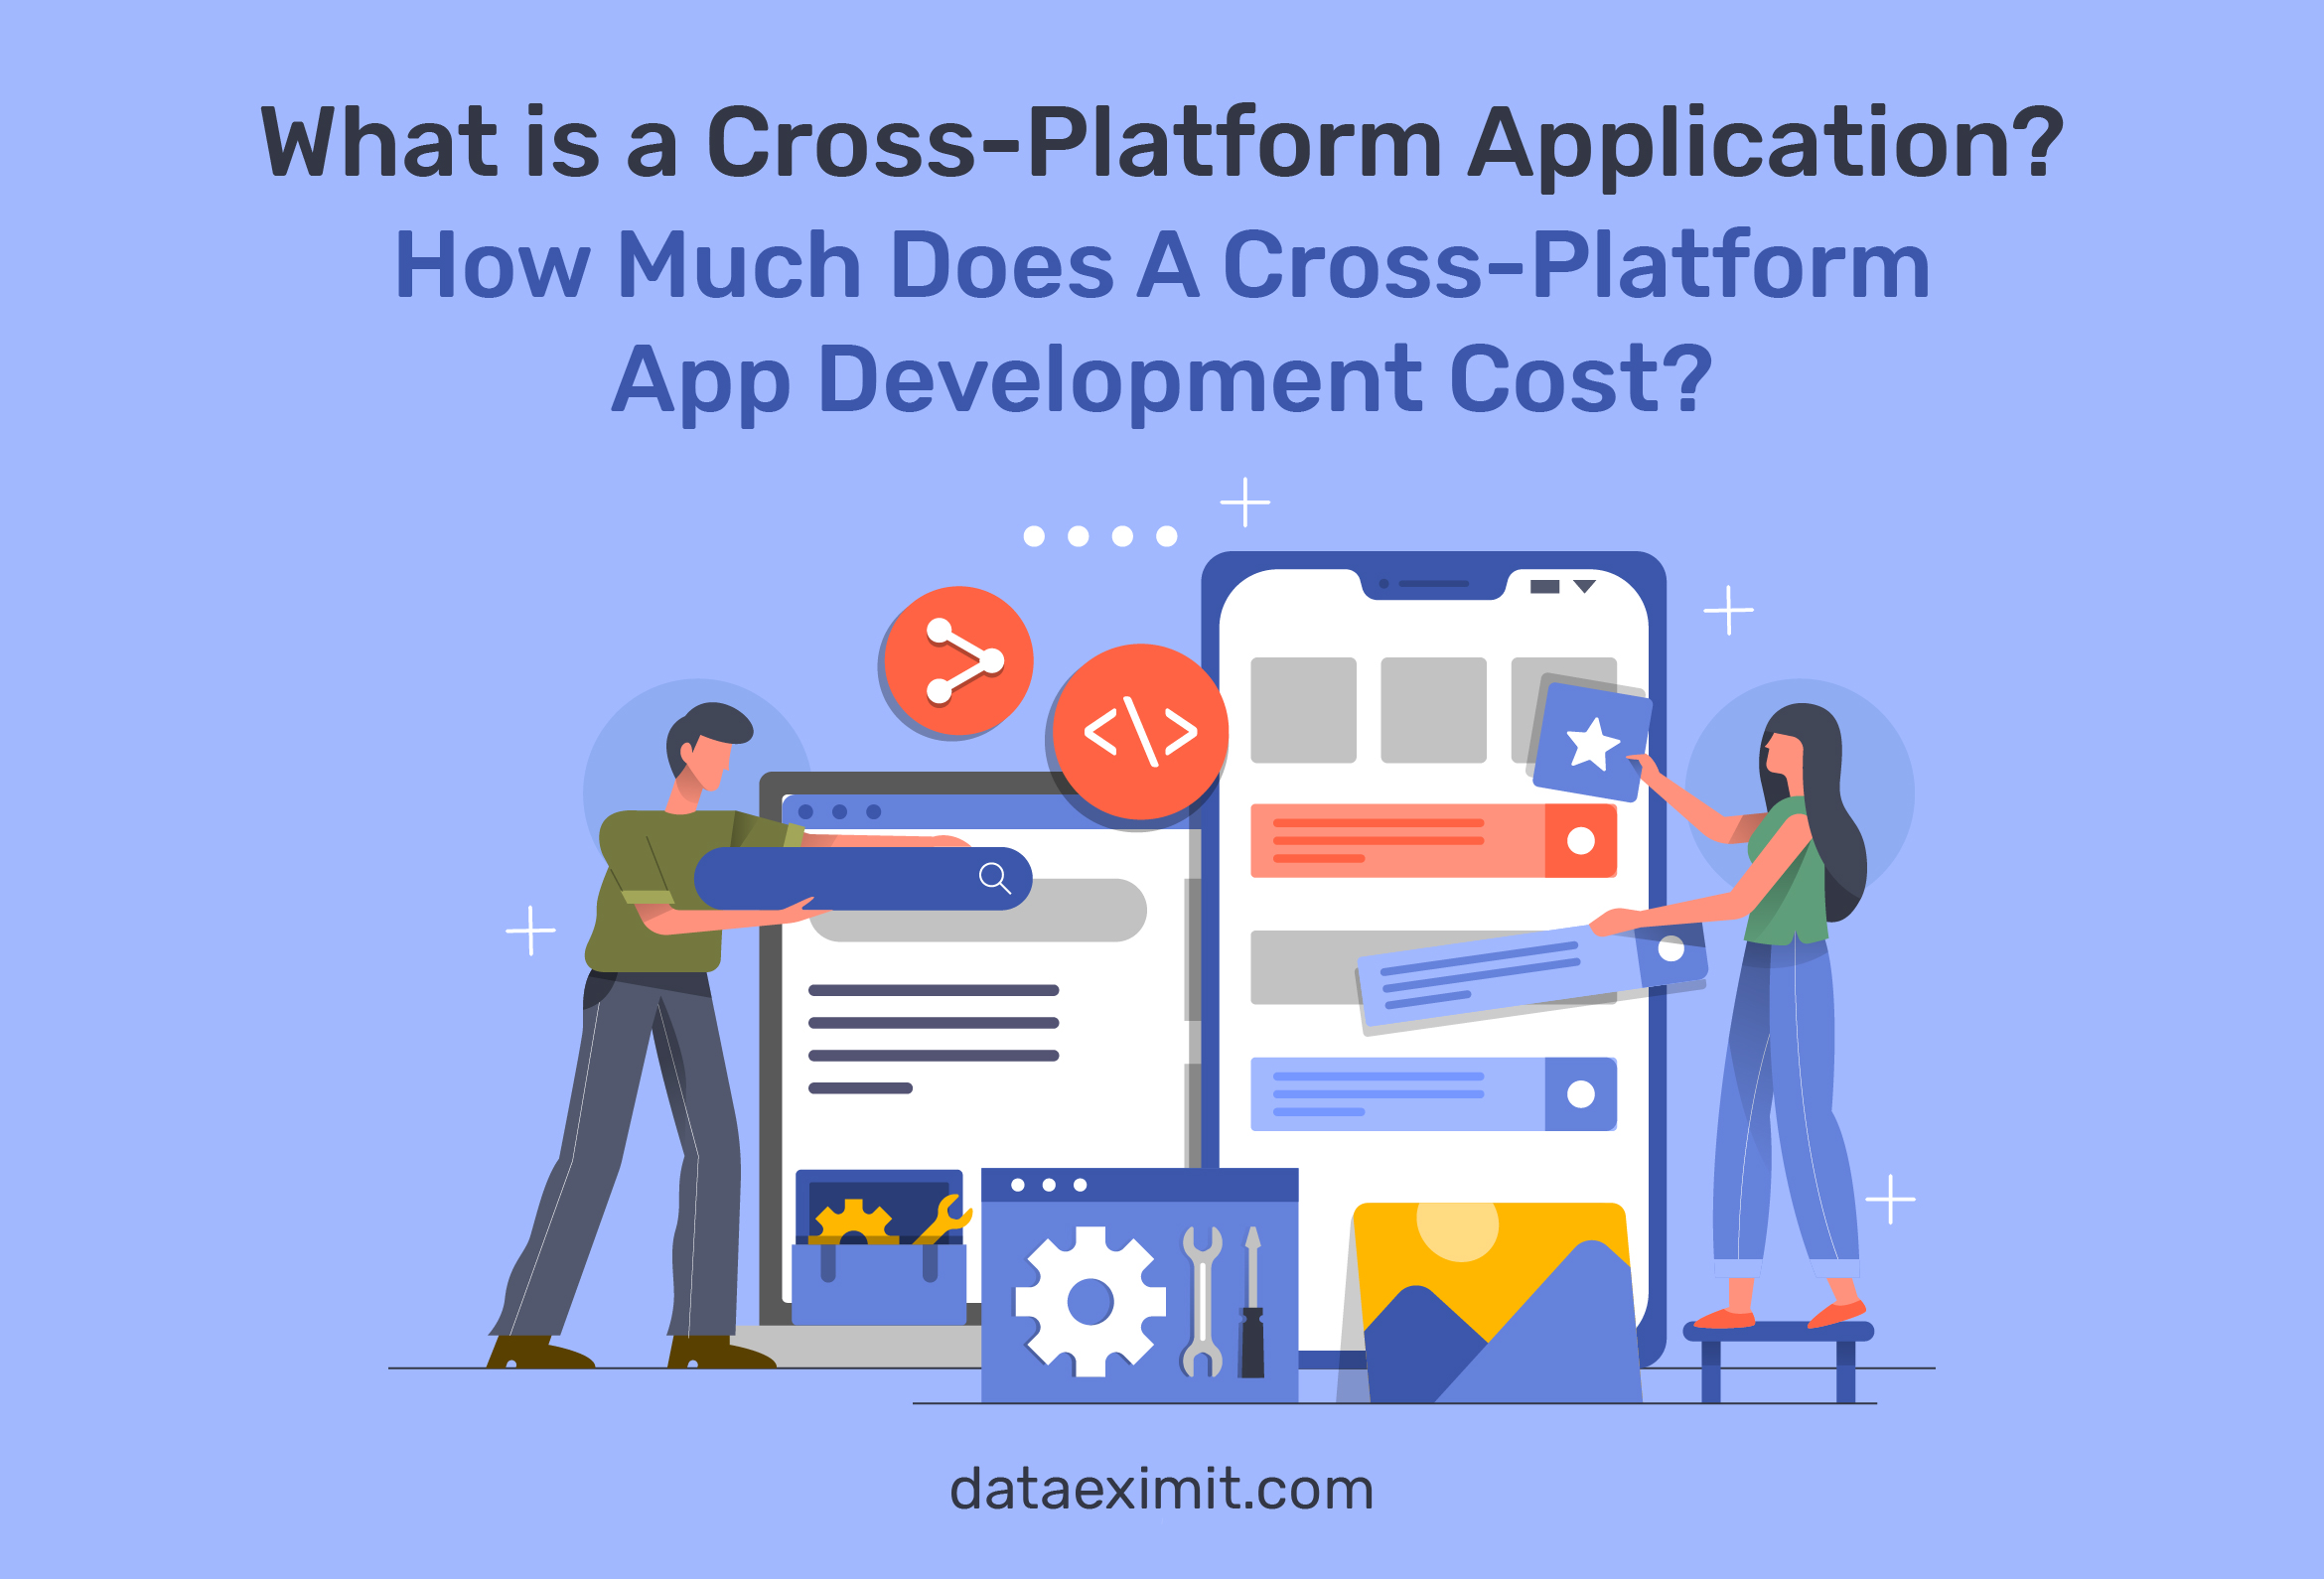 What is a Cross-Platform Application? How Much Does A Cross-Platform App Development Cost?